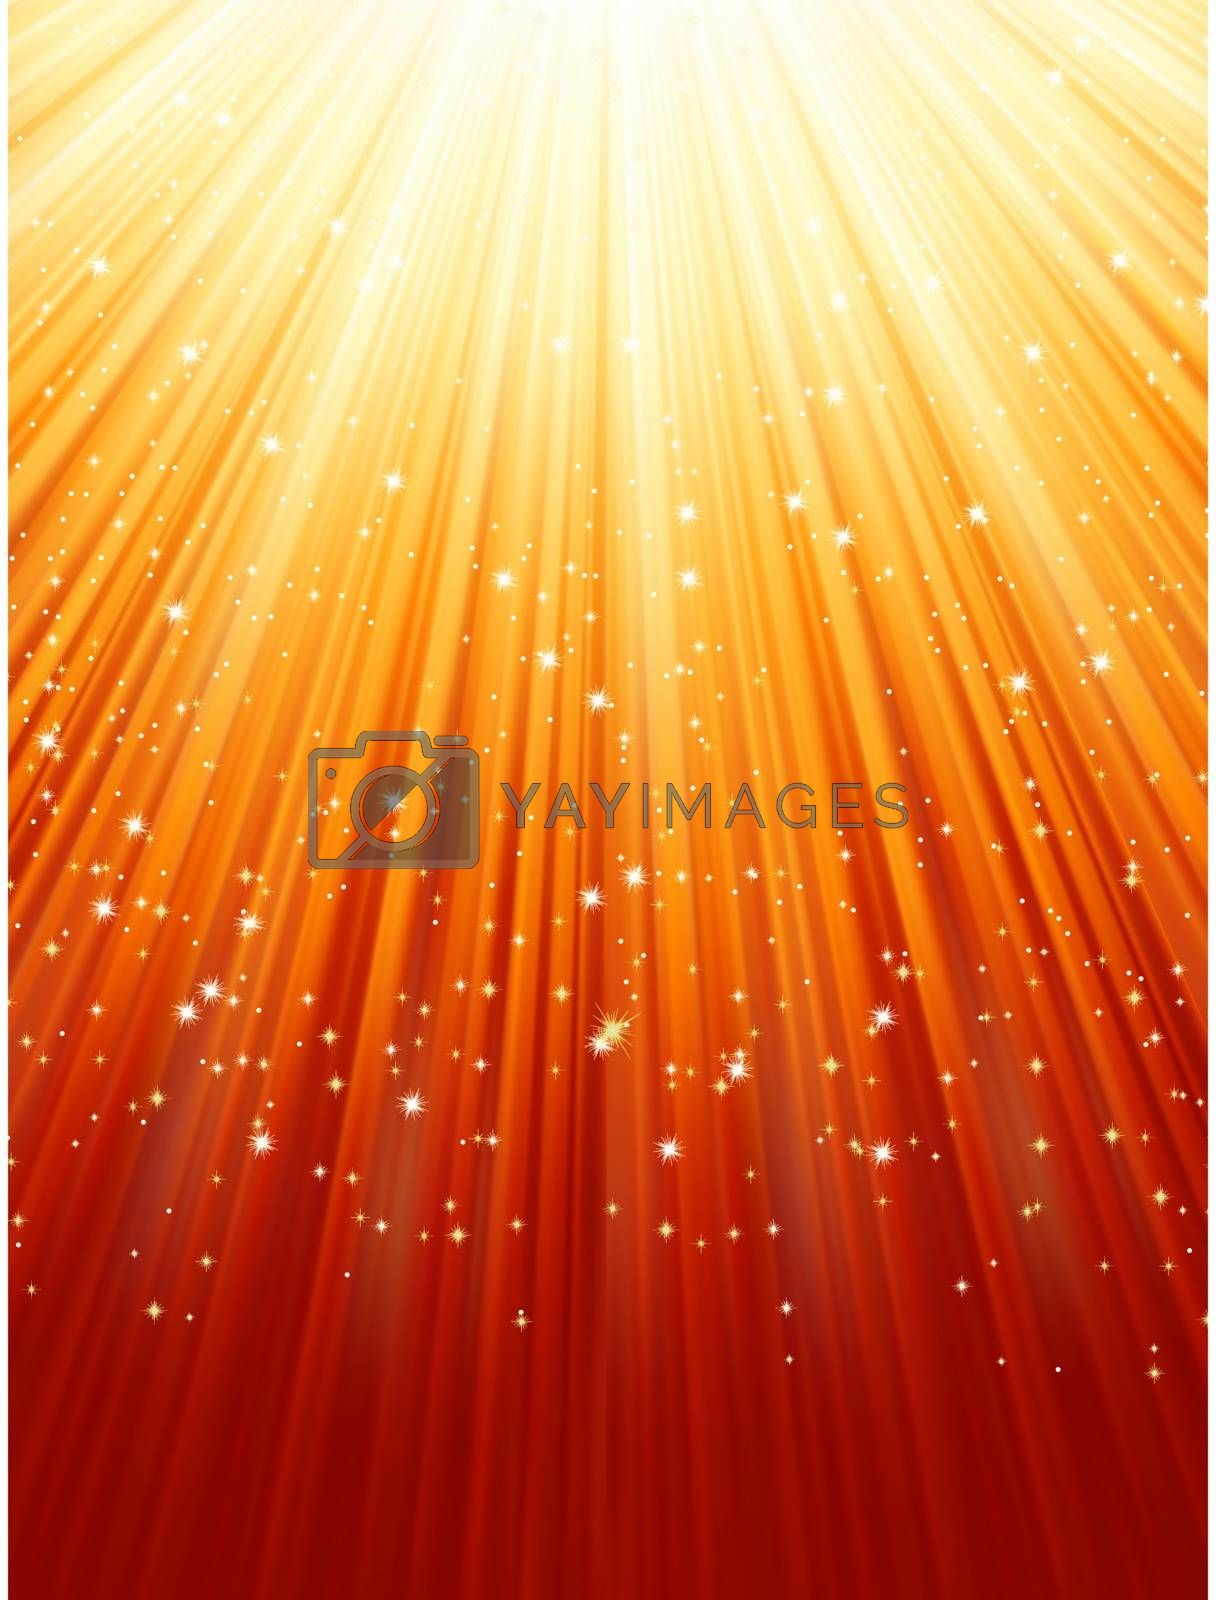 Snowflakes and stars descending on a path of golden light. EPS 8 vector file included